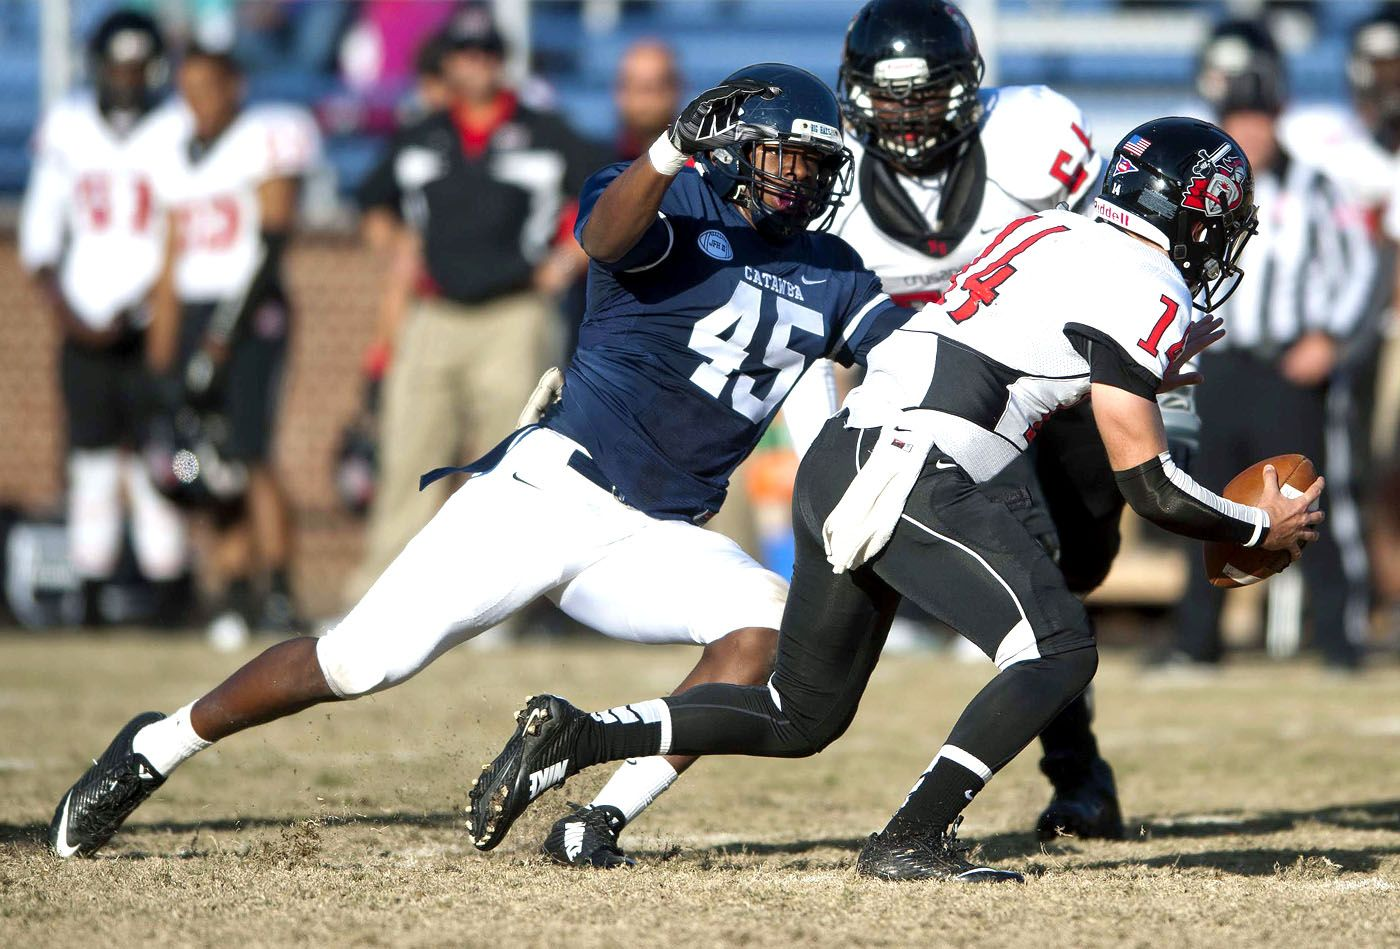 Catawba Football Kitchens steps into starring role